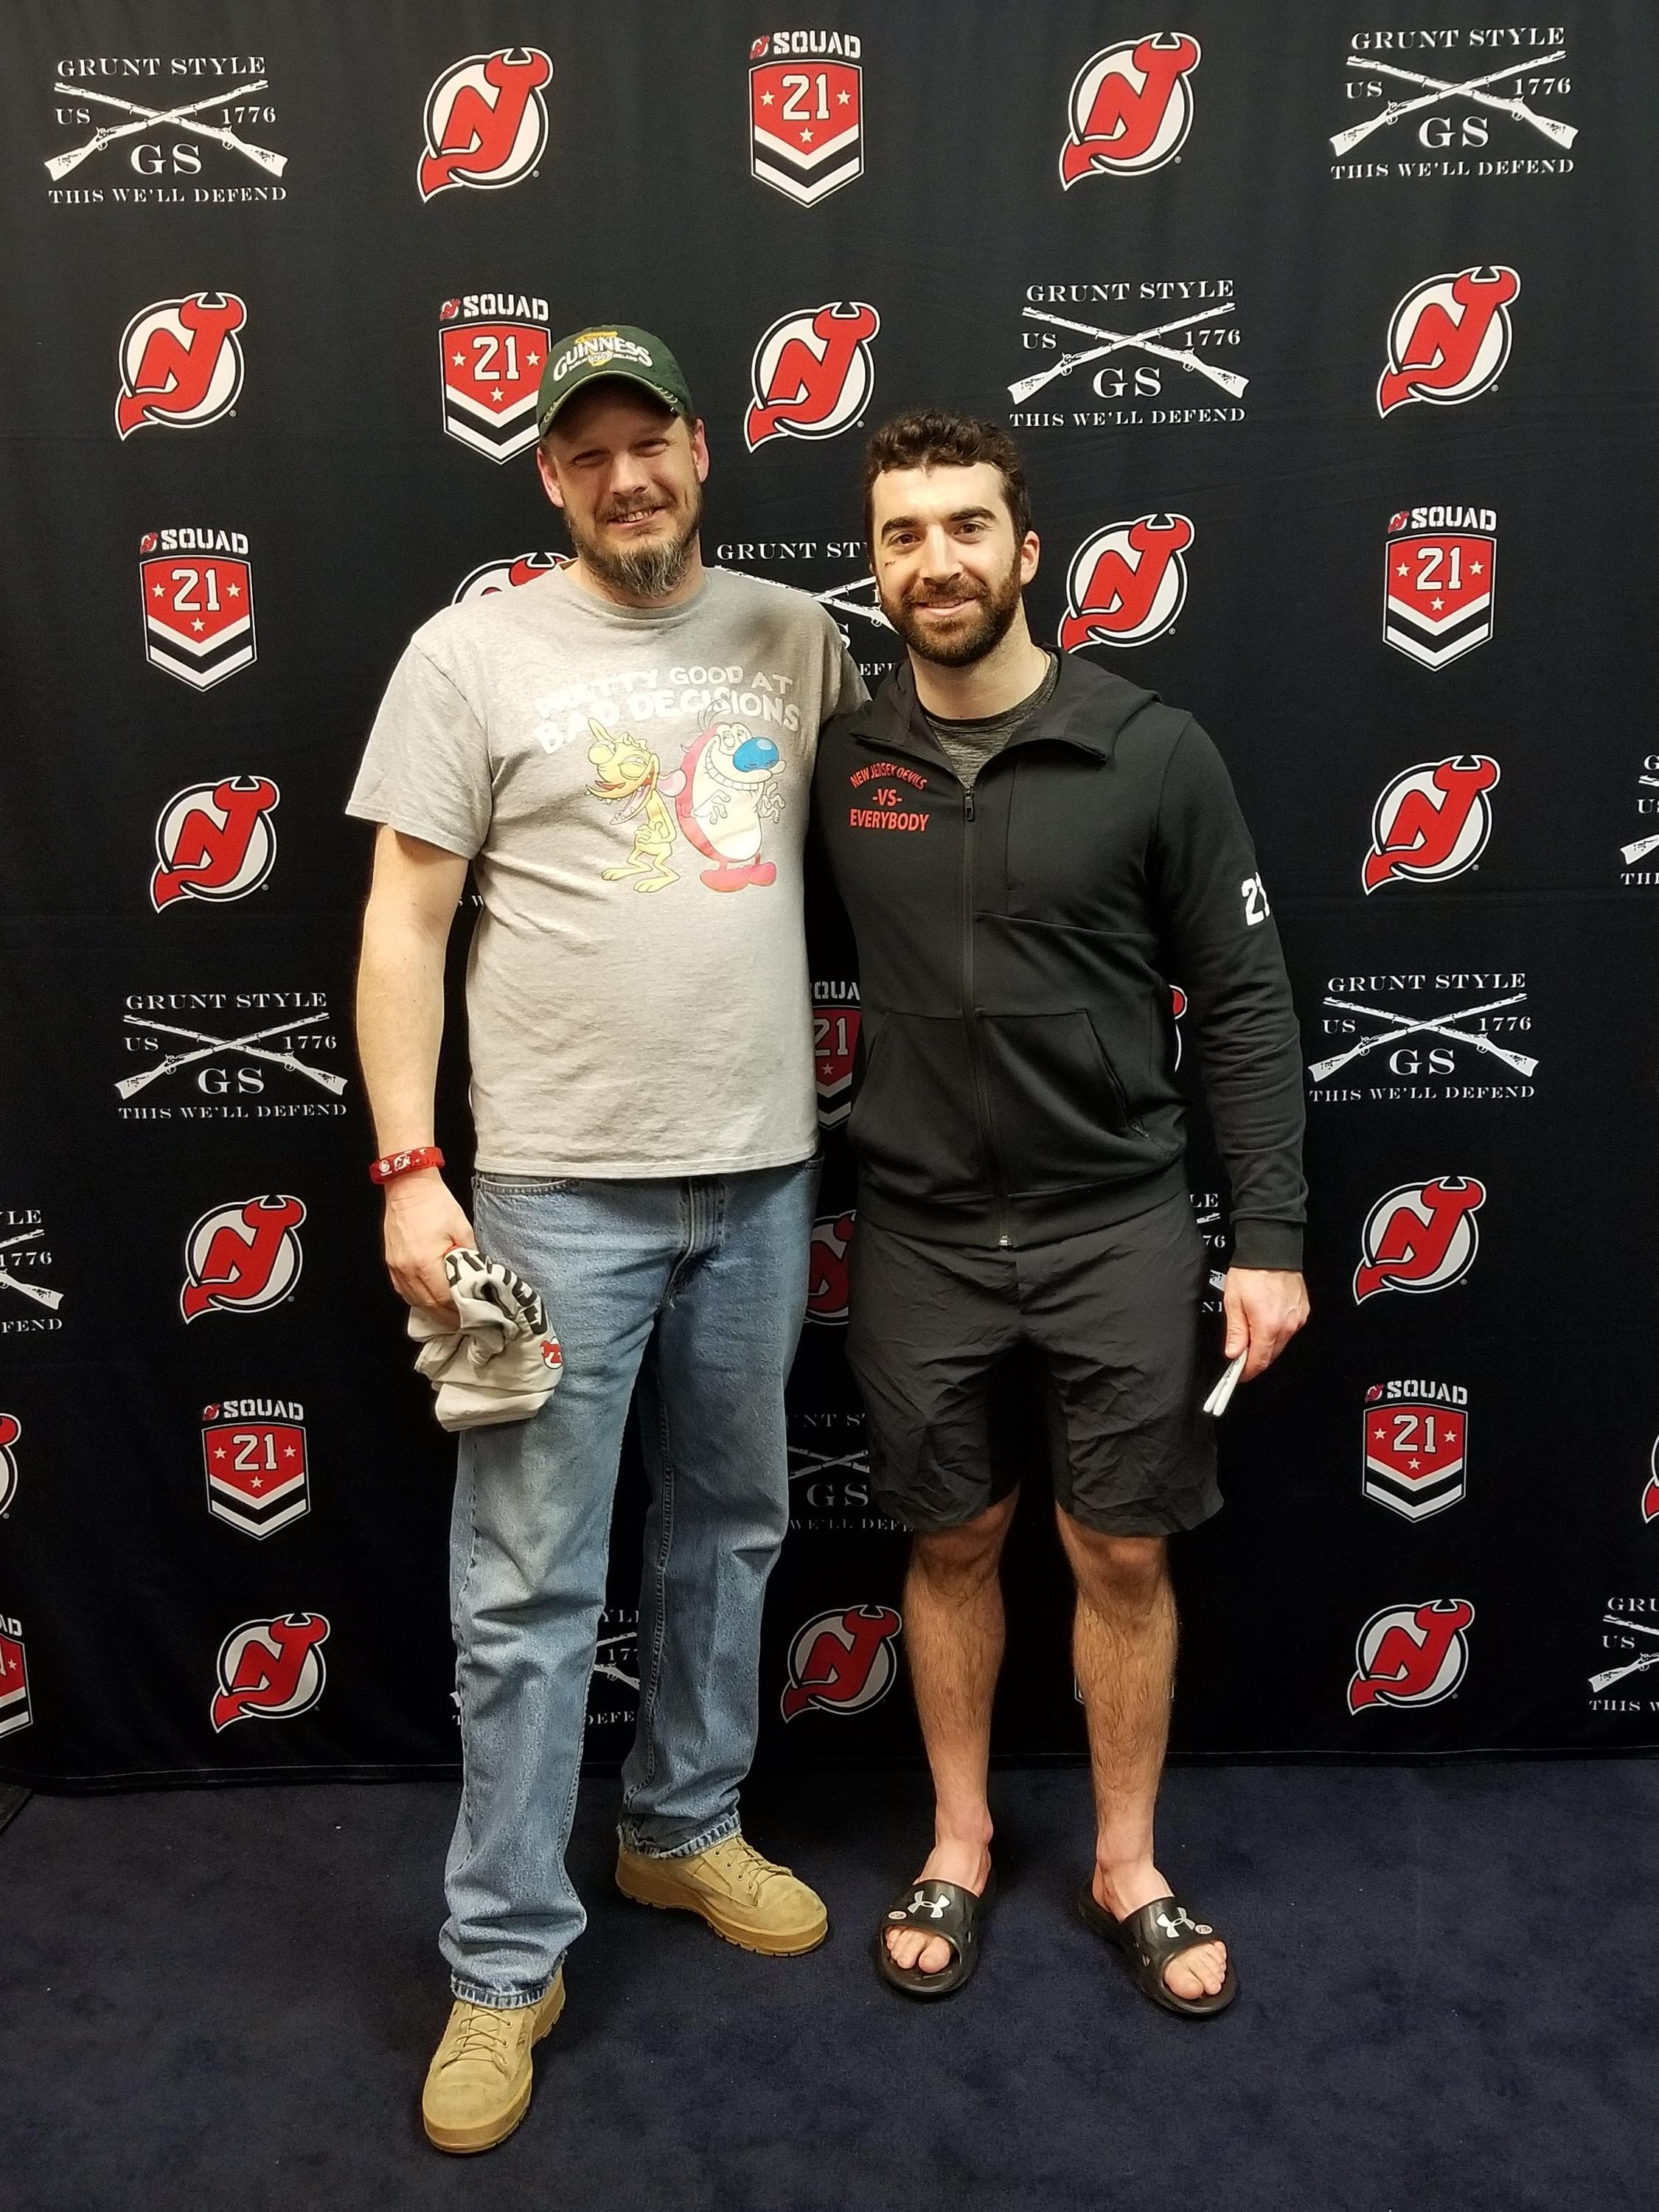 Thank you messages to veteran tickets foundation donors glenn attended new jersey devils vs toronto maple leafs nhl 21 squad tickets m4hsunfo